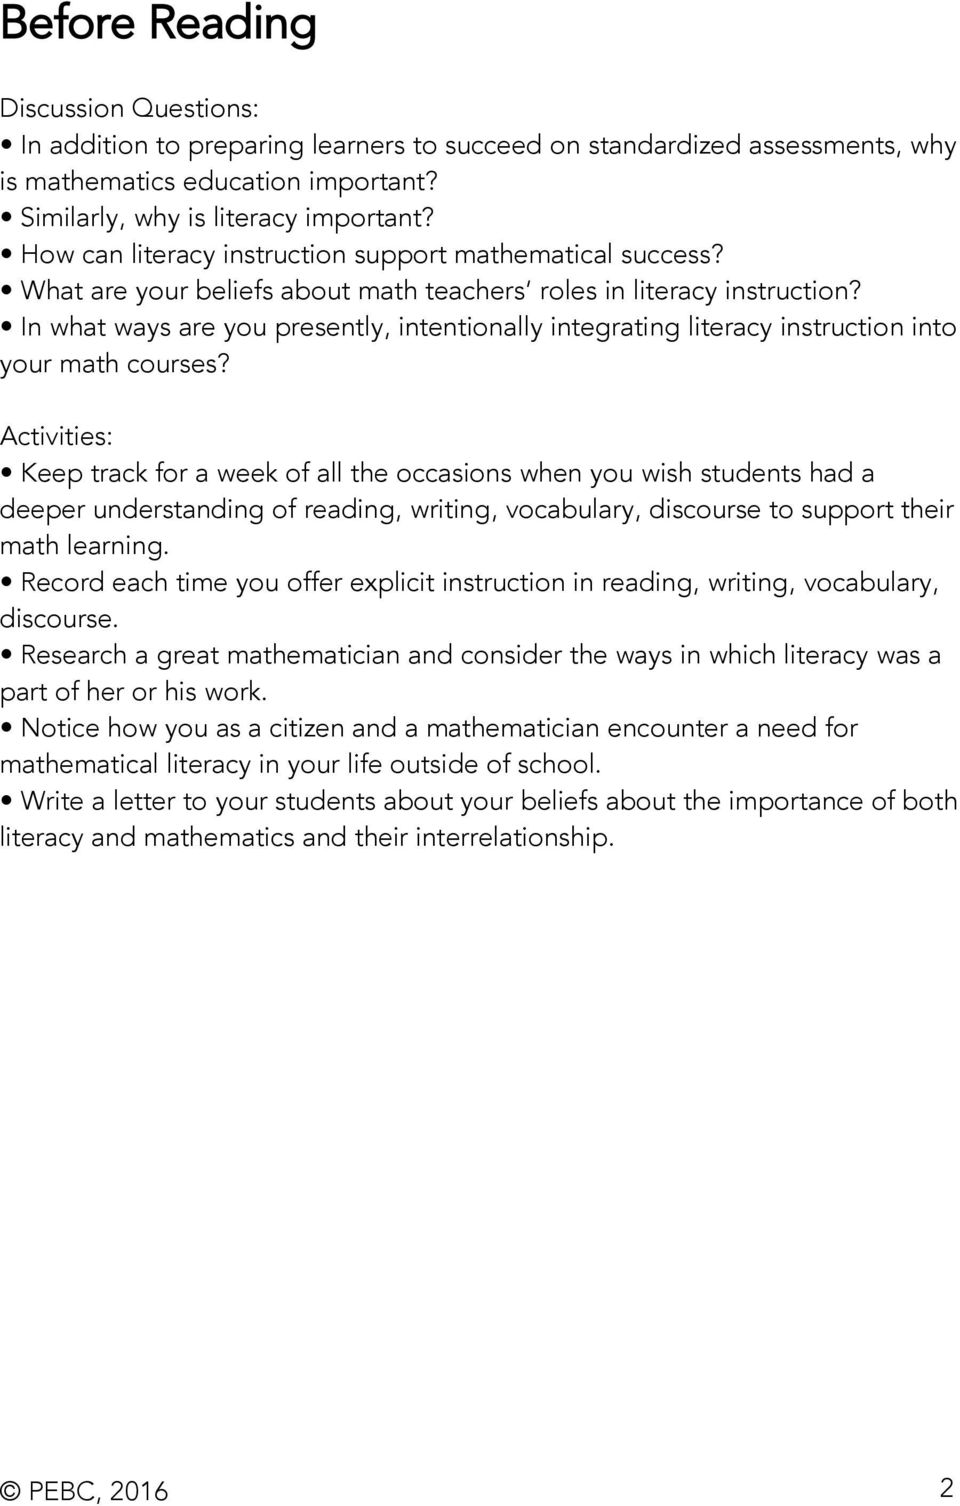 In what ways are you presently, intentionally integrating literacy instruction into your math courses?